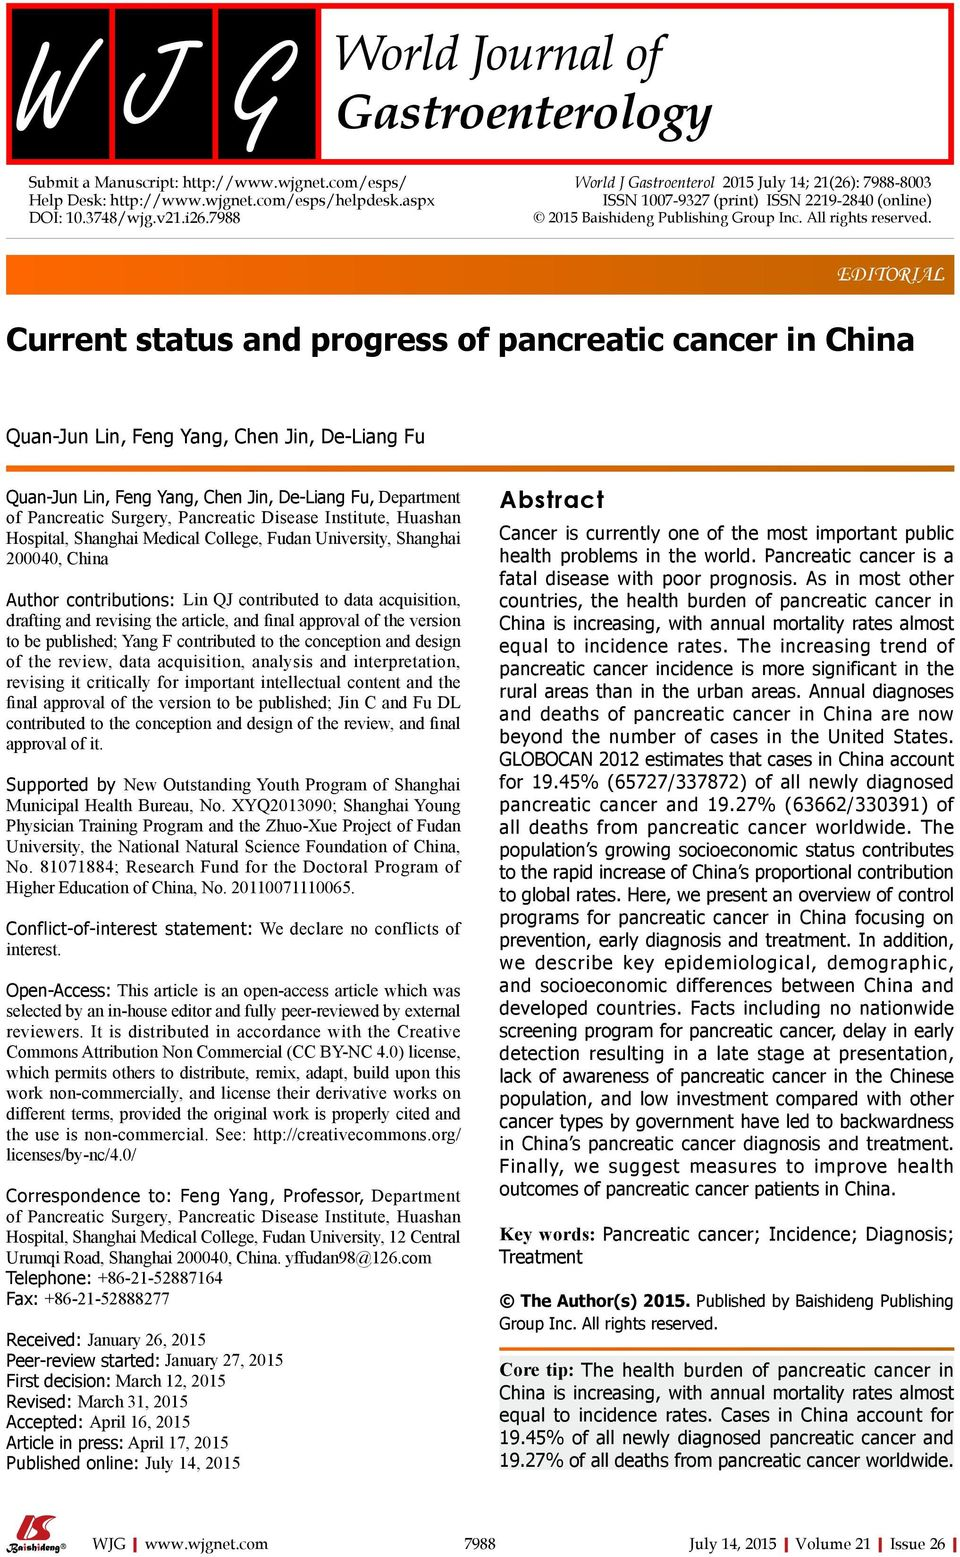 EDITORIAL Current status and progress of pancreatic cancer in China Quan-Jun Lin, Feng Yang, Chen Jin, De-Liang Fu Quan-Jun Lin, Feng Yang, Chen Jin, De-Liang Fu, Department of Pancreatic Surgery,